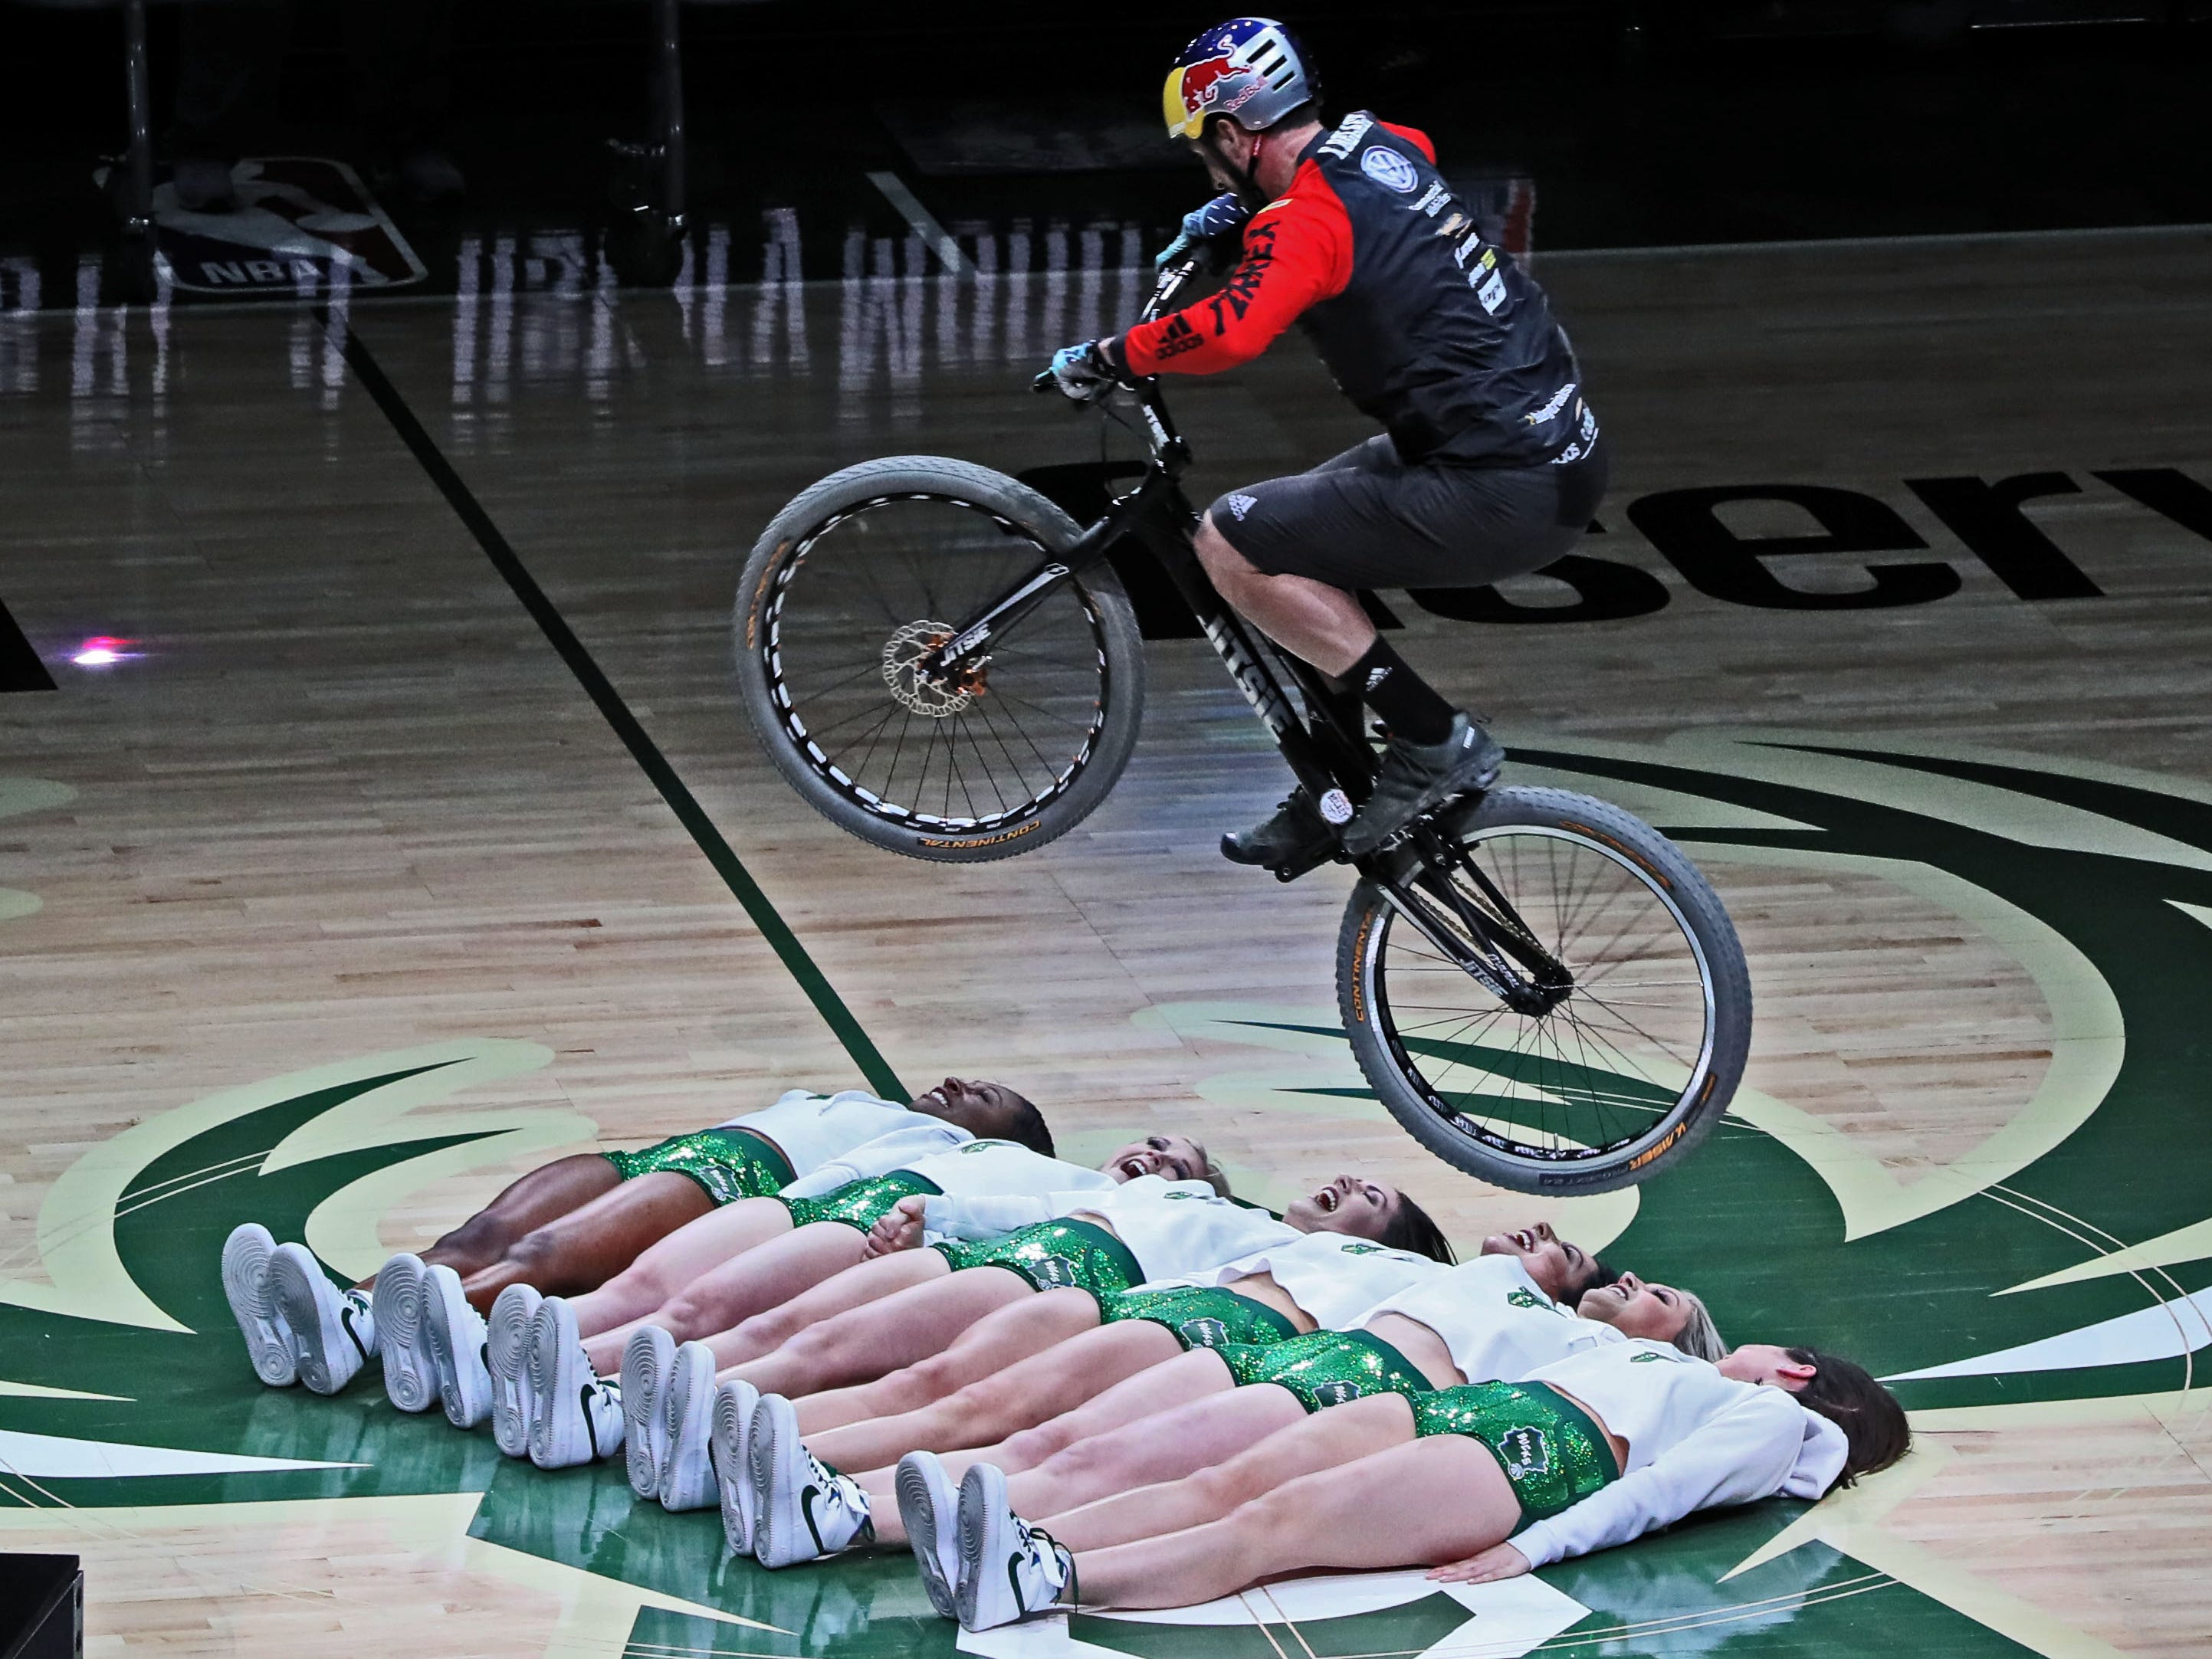 Kenny Belaey of Belgium, a champion mountain bike trials rider, using no ramp, jumps over six of the Milwaukee Bucks Dancers during the halftime show on Feb. 6.